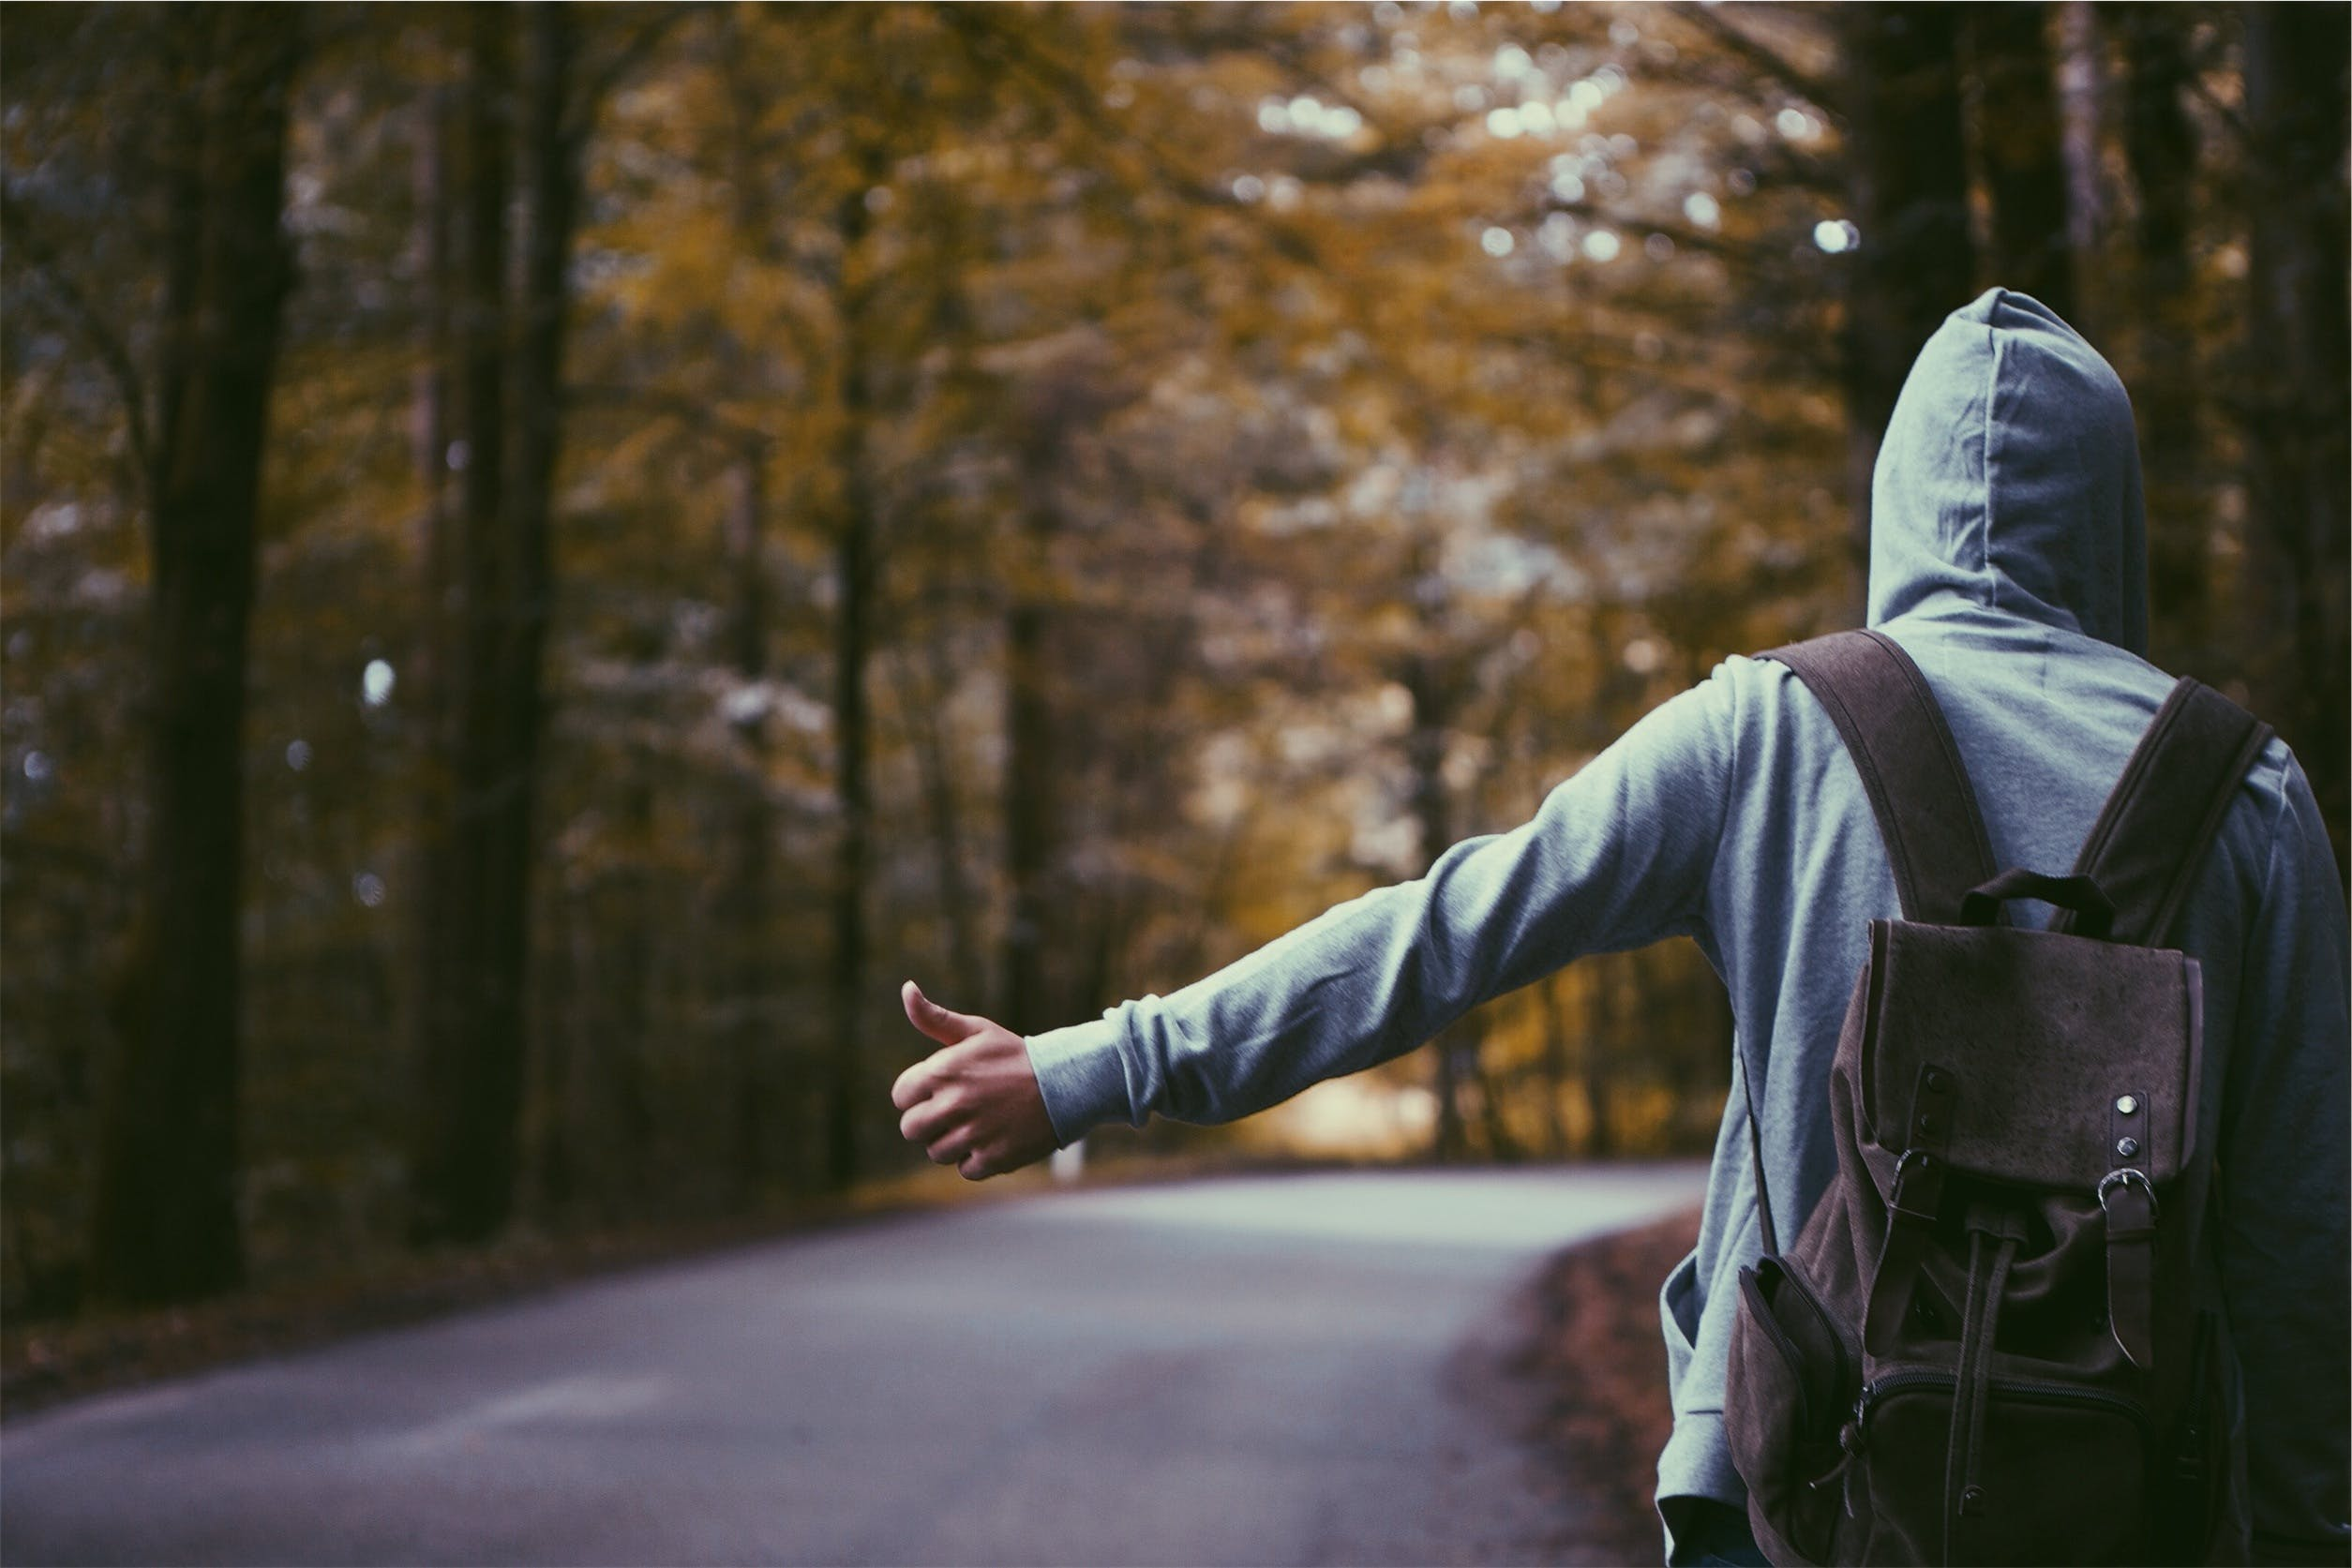 Free stock photo of road, man, people, backpack